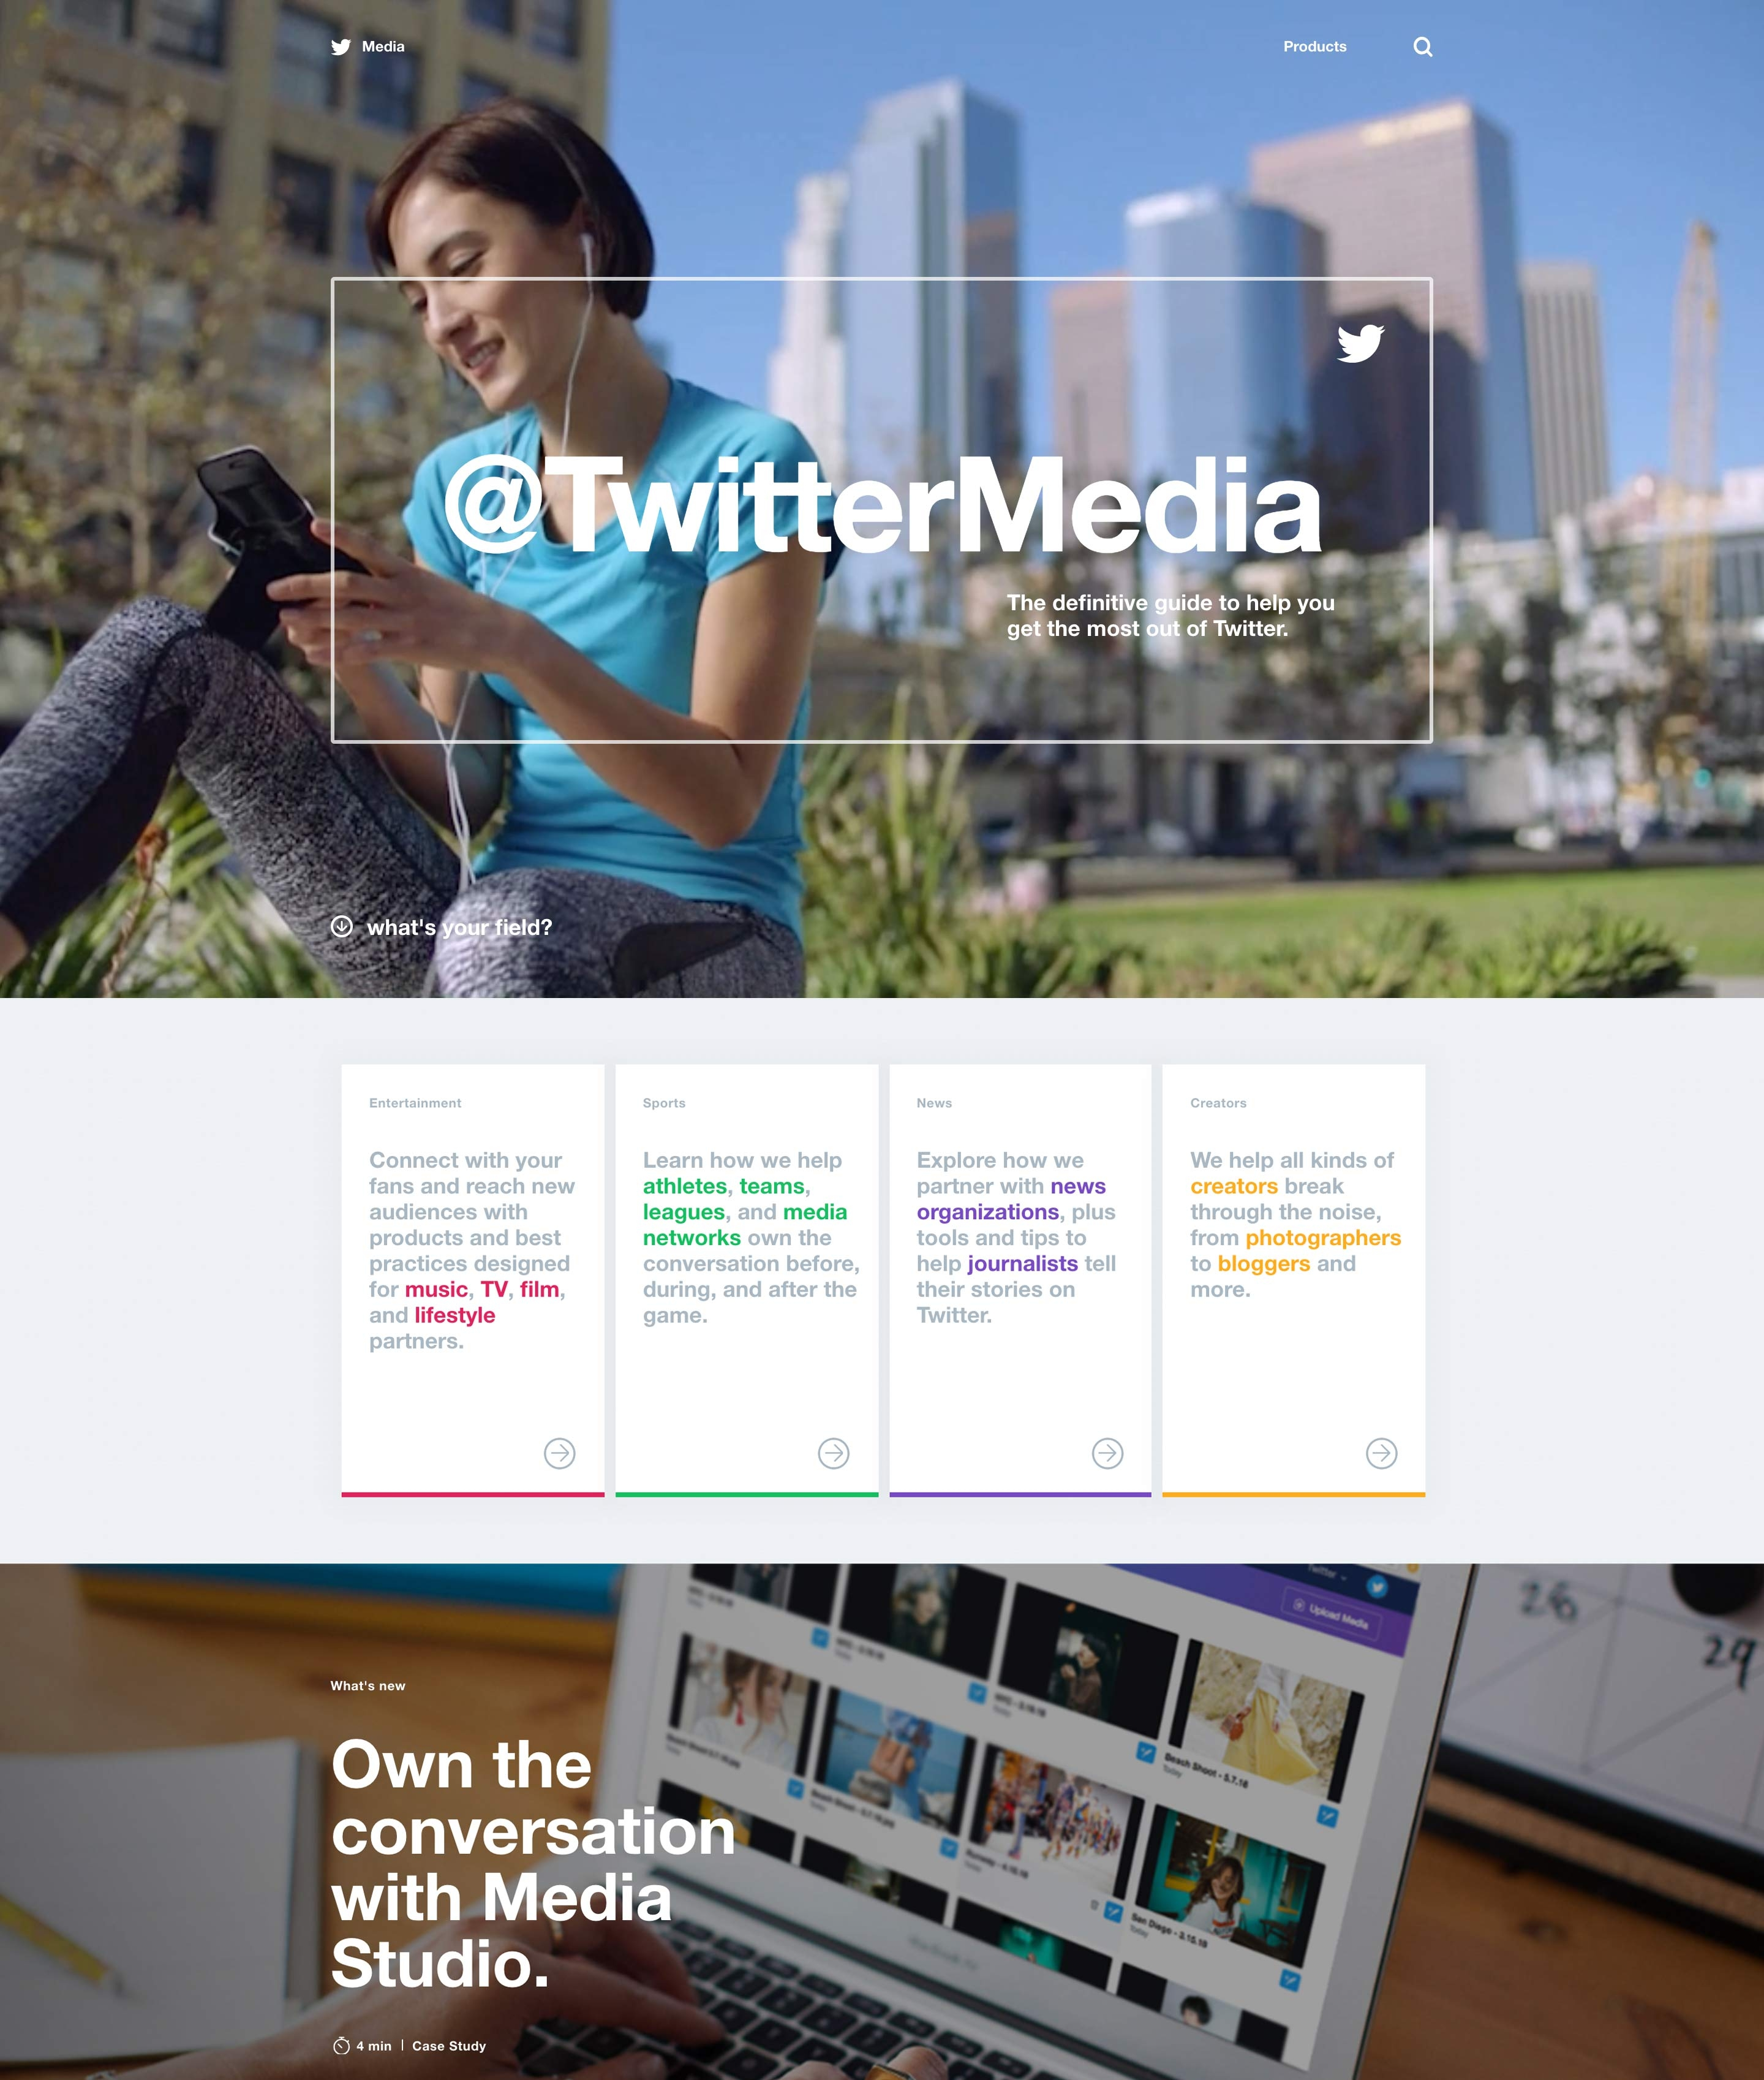 Twitter Media: A new home for publishers on Twitter